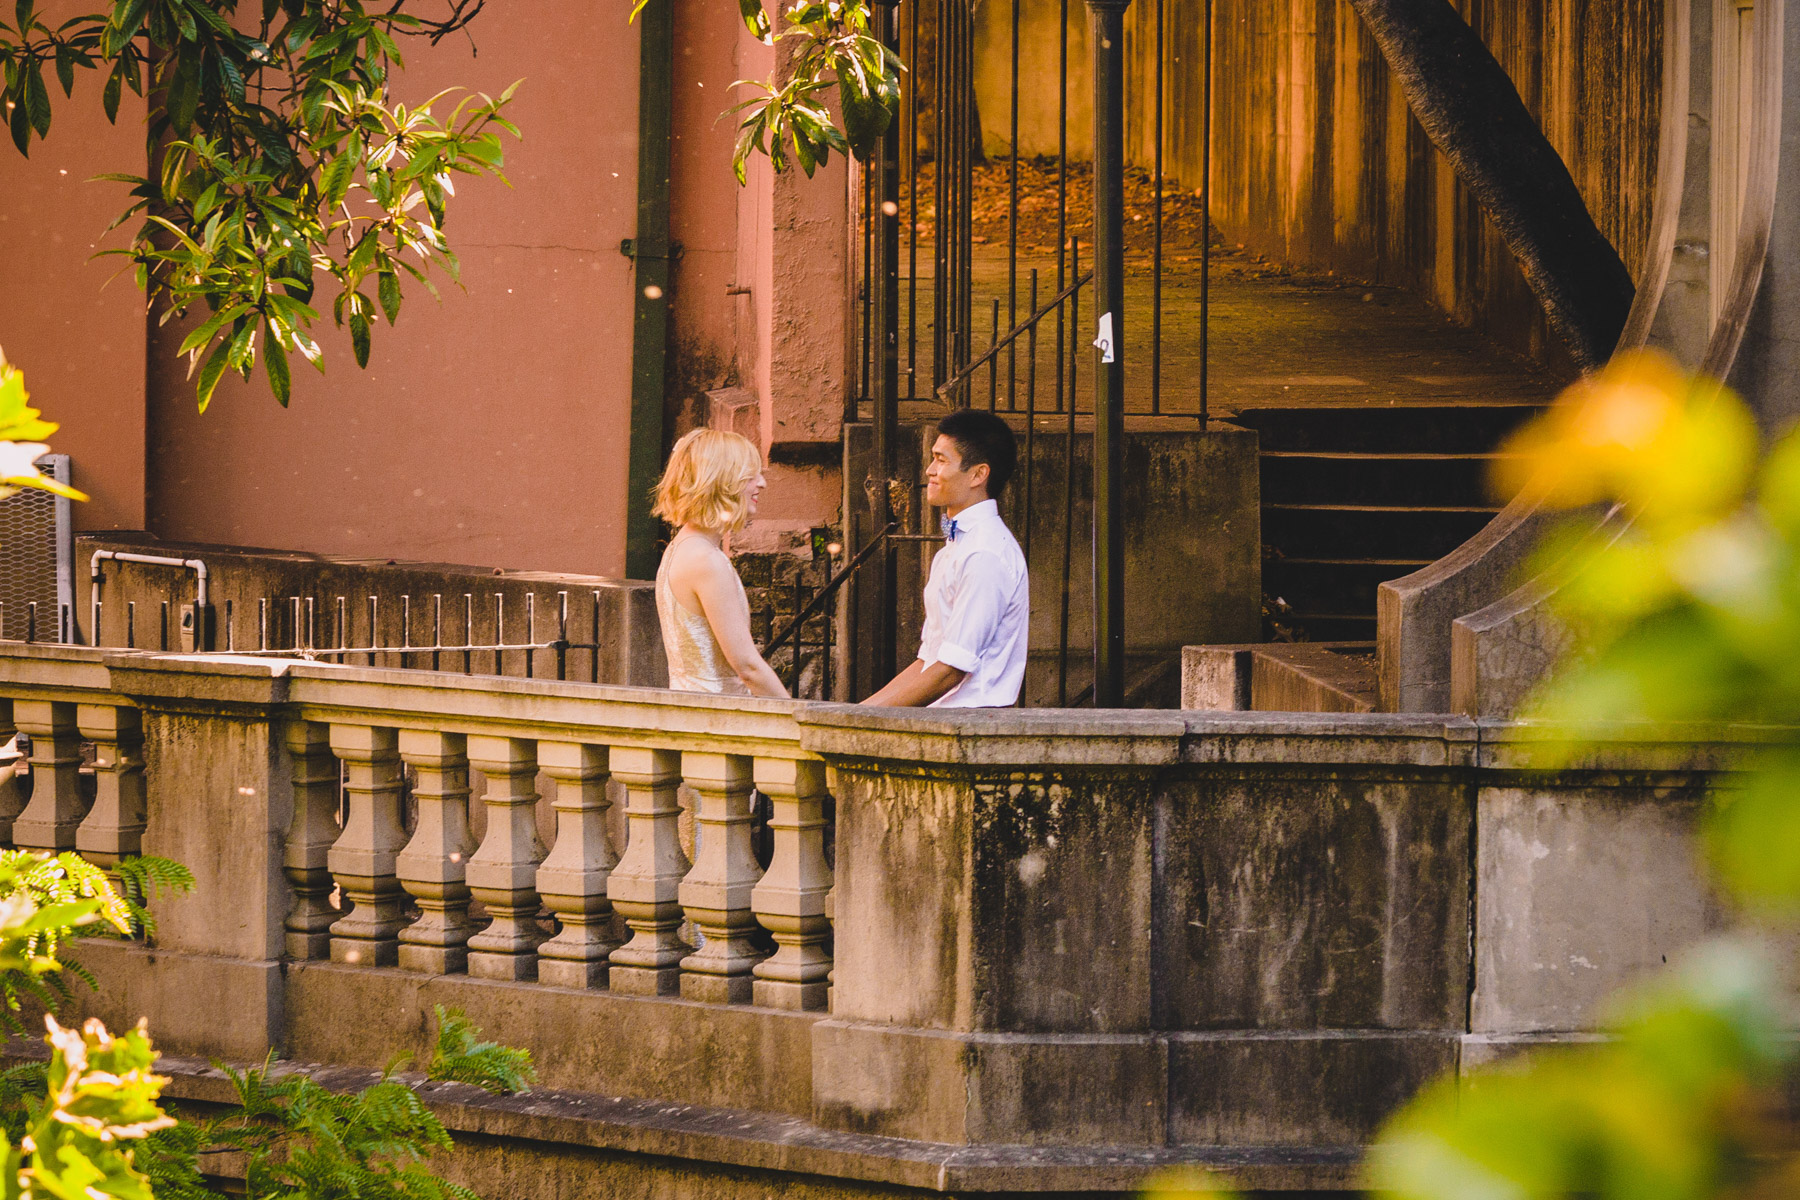 *Weekdays are considered to be Mon-Fri. The off-season is considered to be May-Aug. Discounts are for Sydney metropolitan weddings only. Maximum discount is 20%.